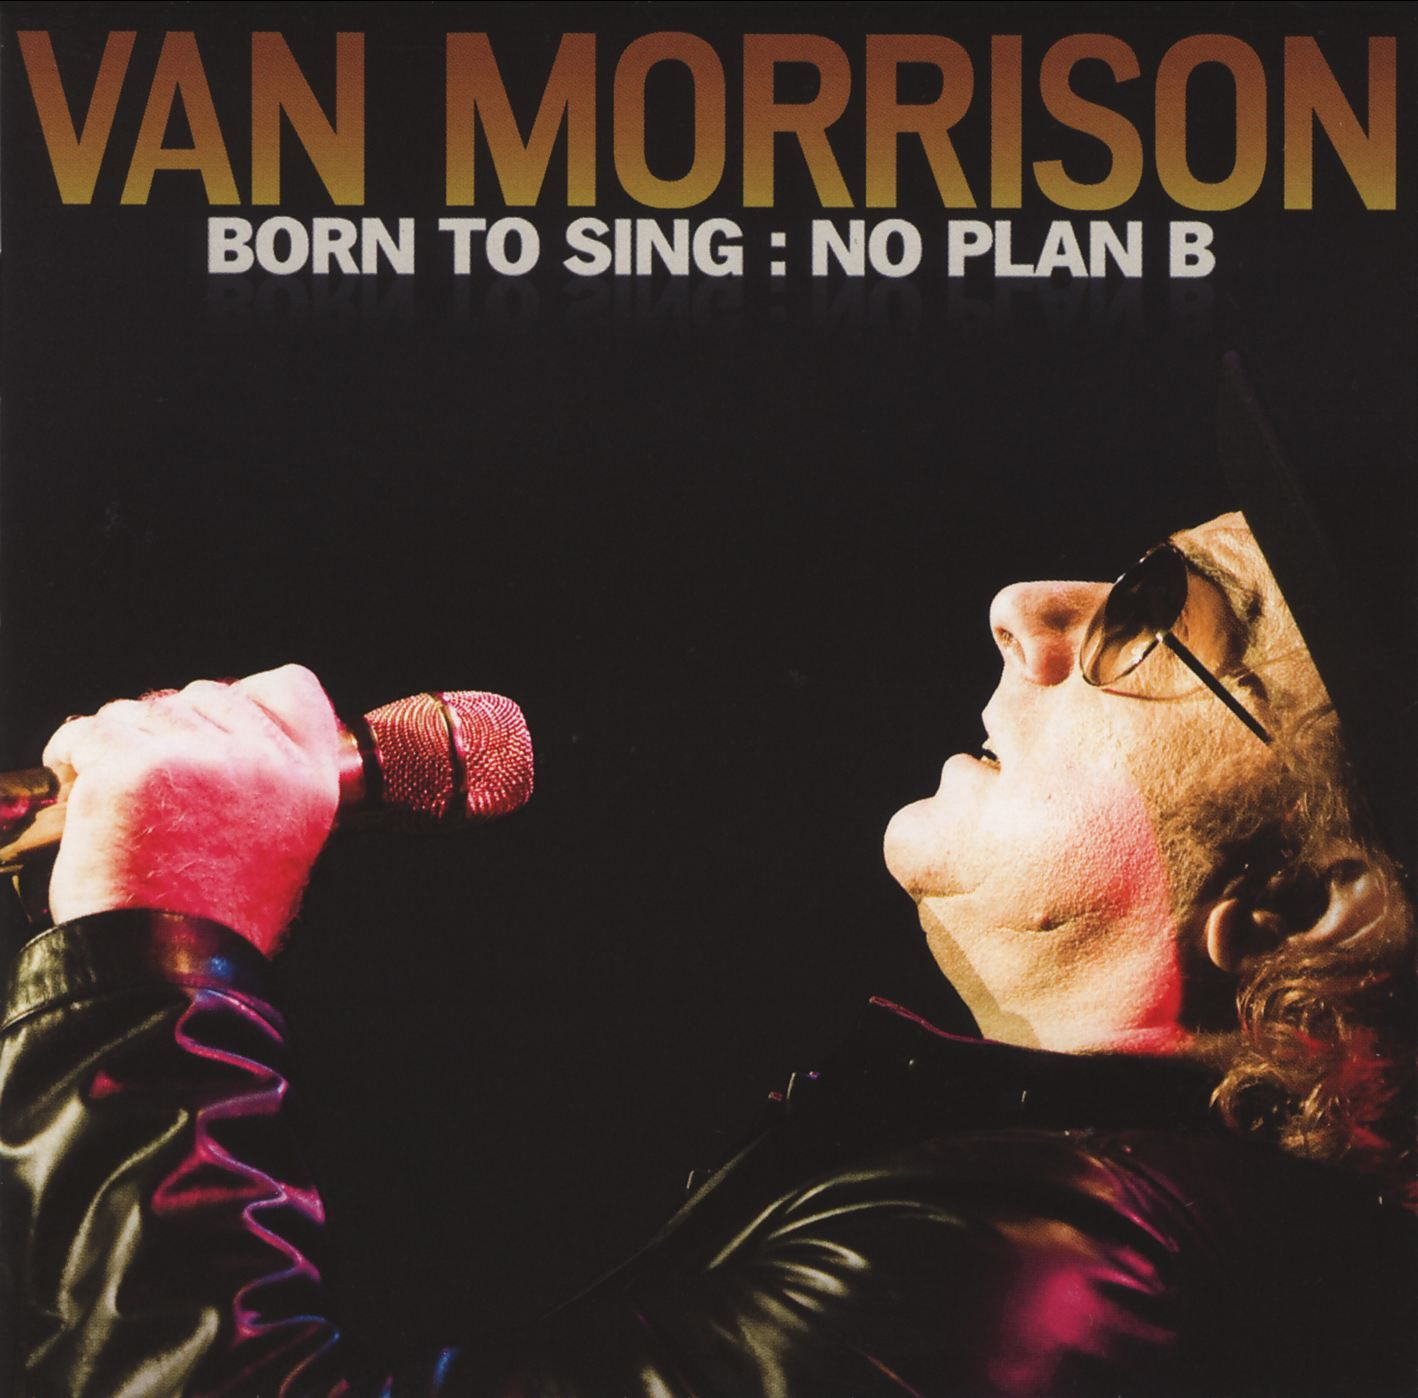 Van Morrison - Born To Sing; No Plan B album cover